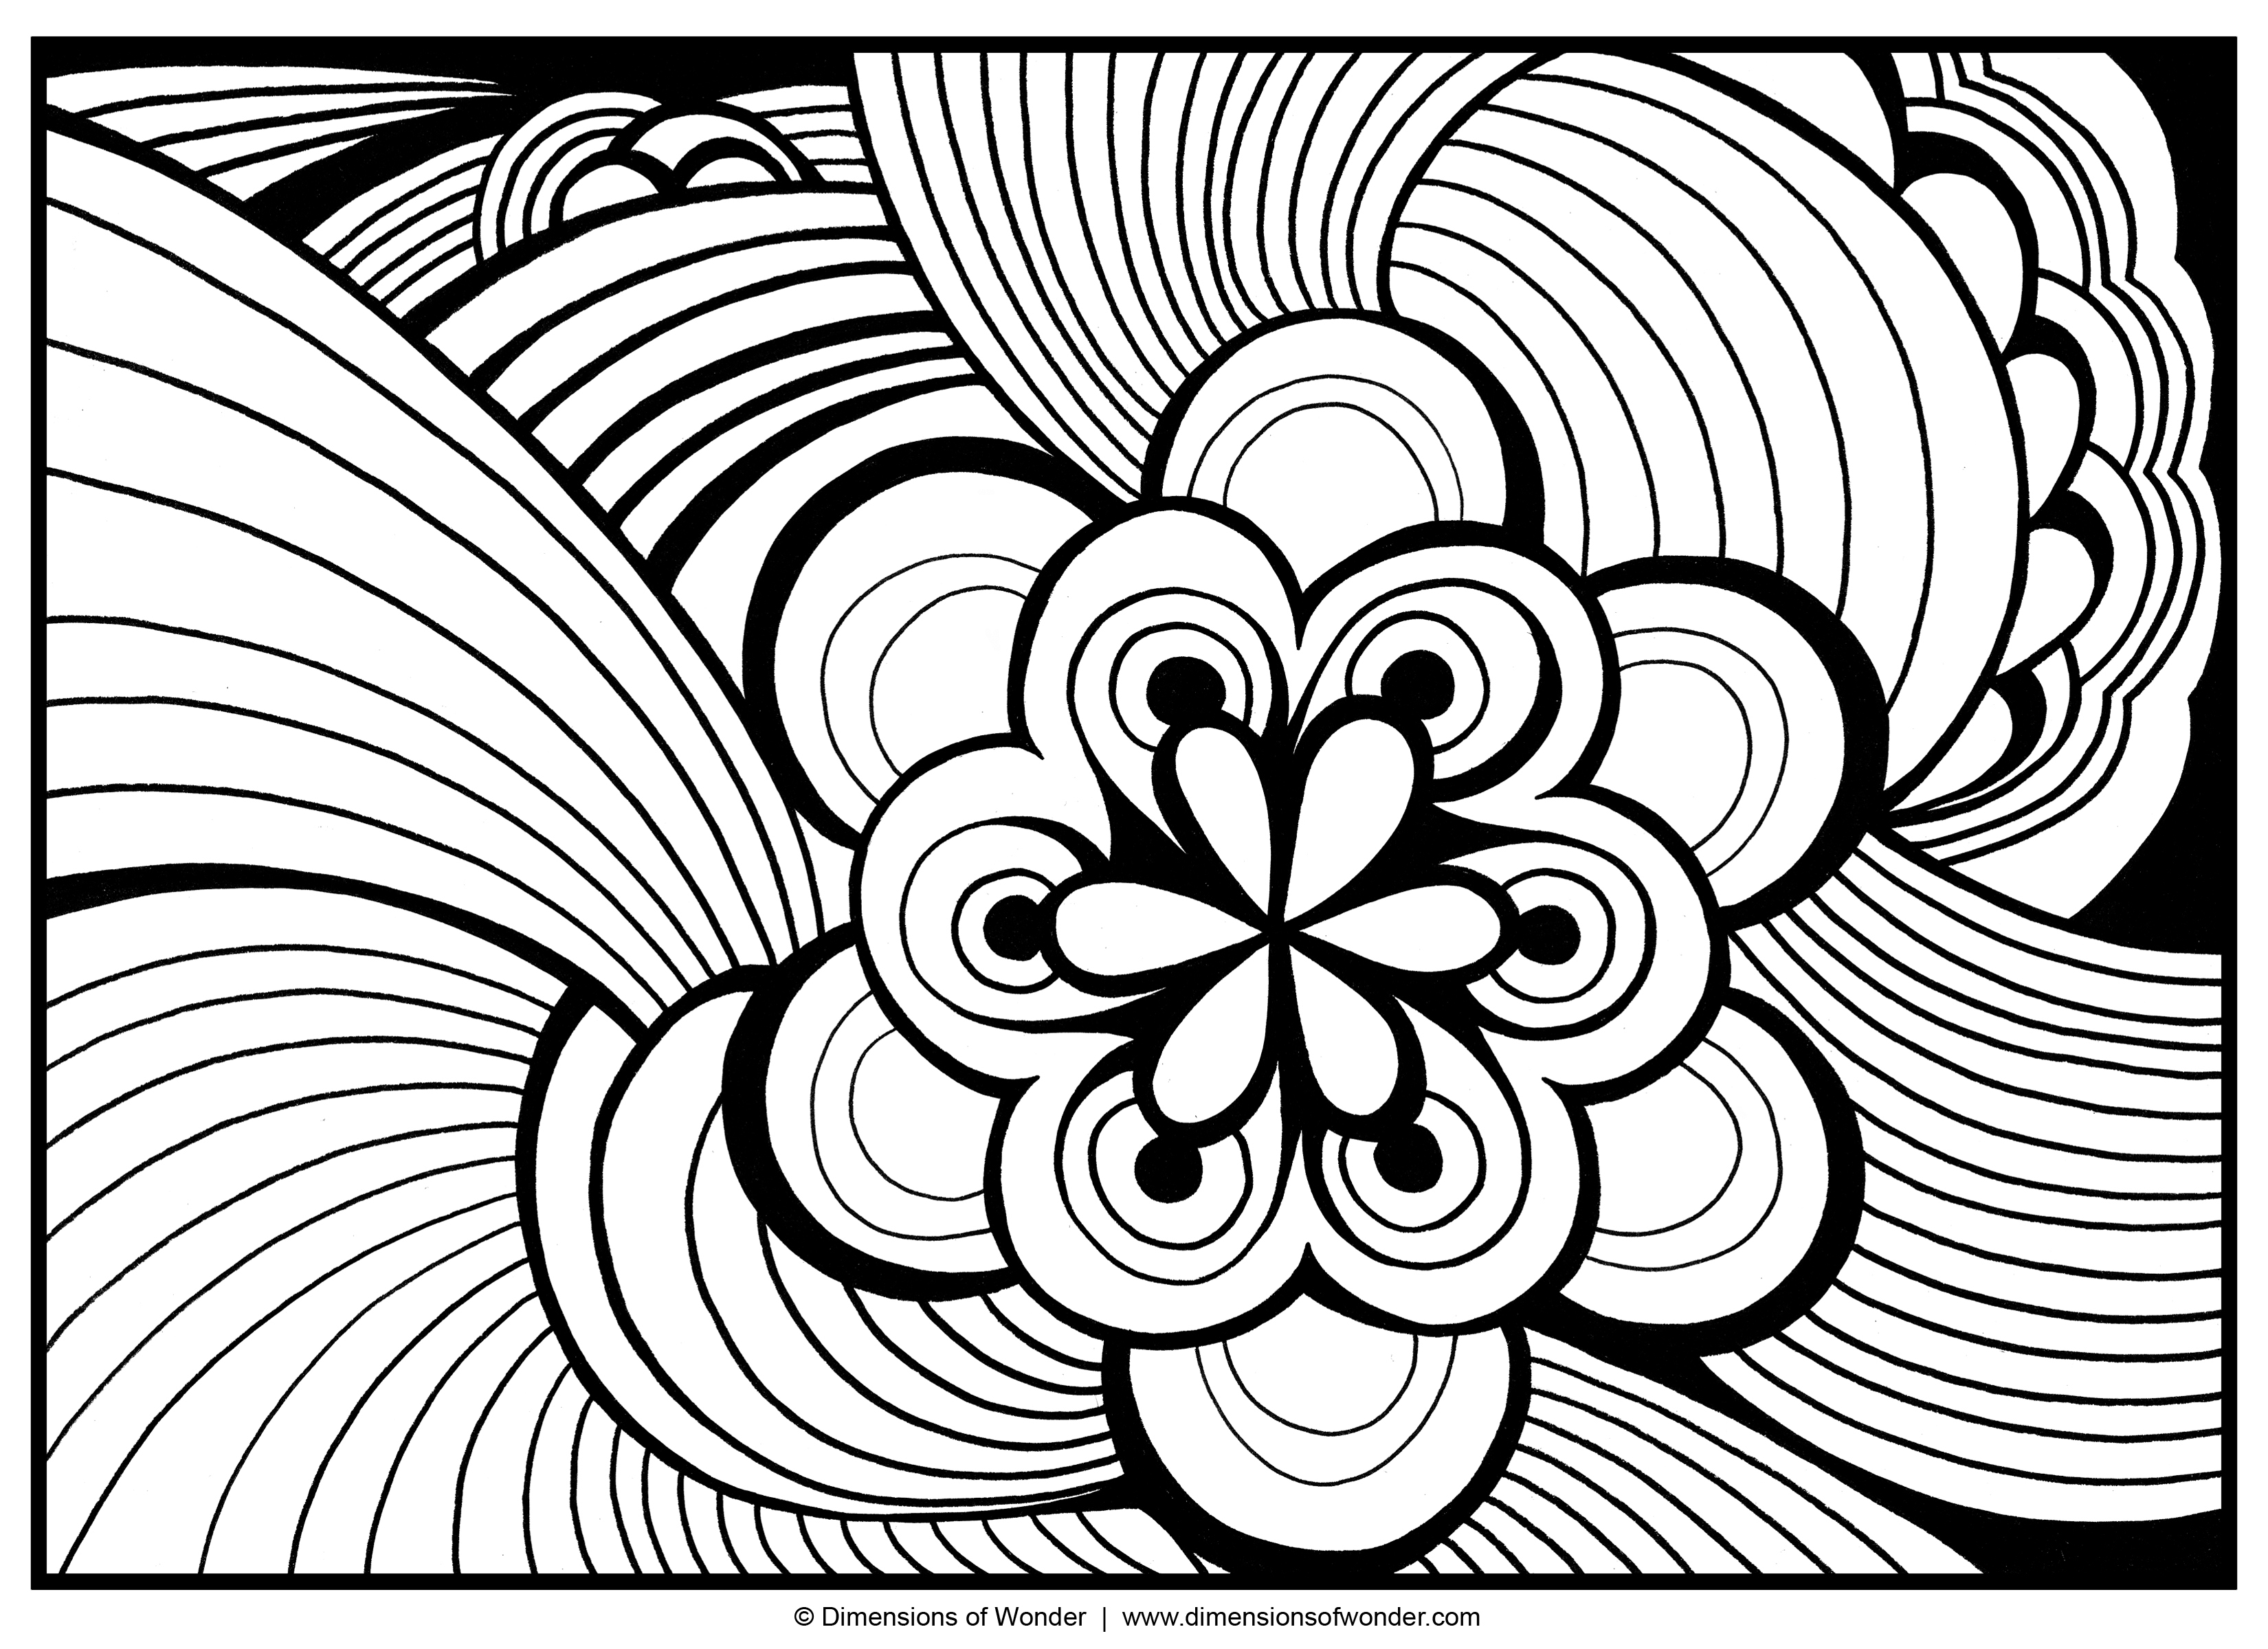 Coloring Pages : Free Art Coloring Pages Download Clip On 8Tebxbqdc - Free Printable Coloring Designs For Adults